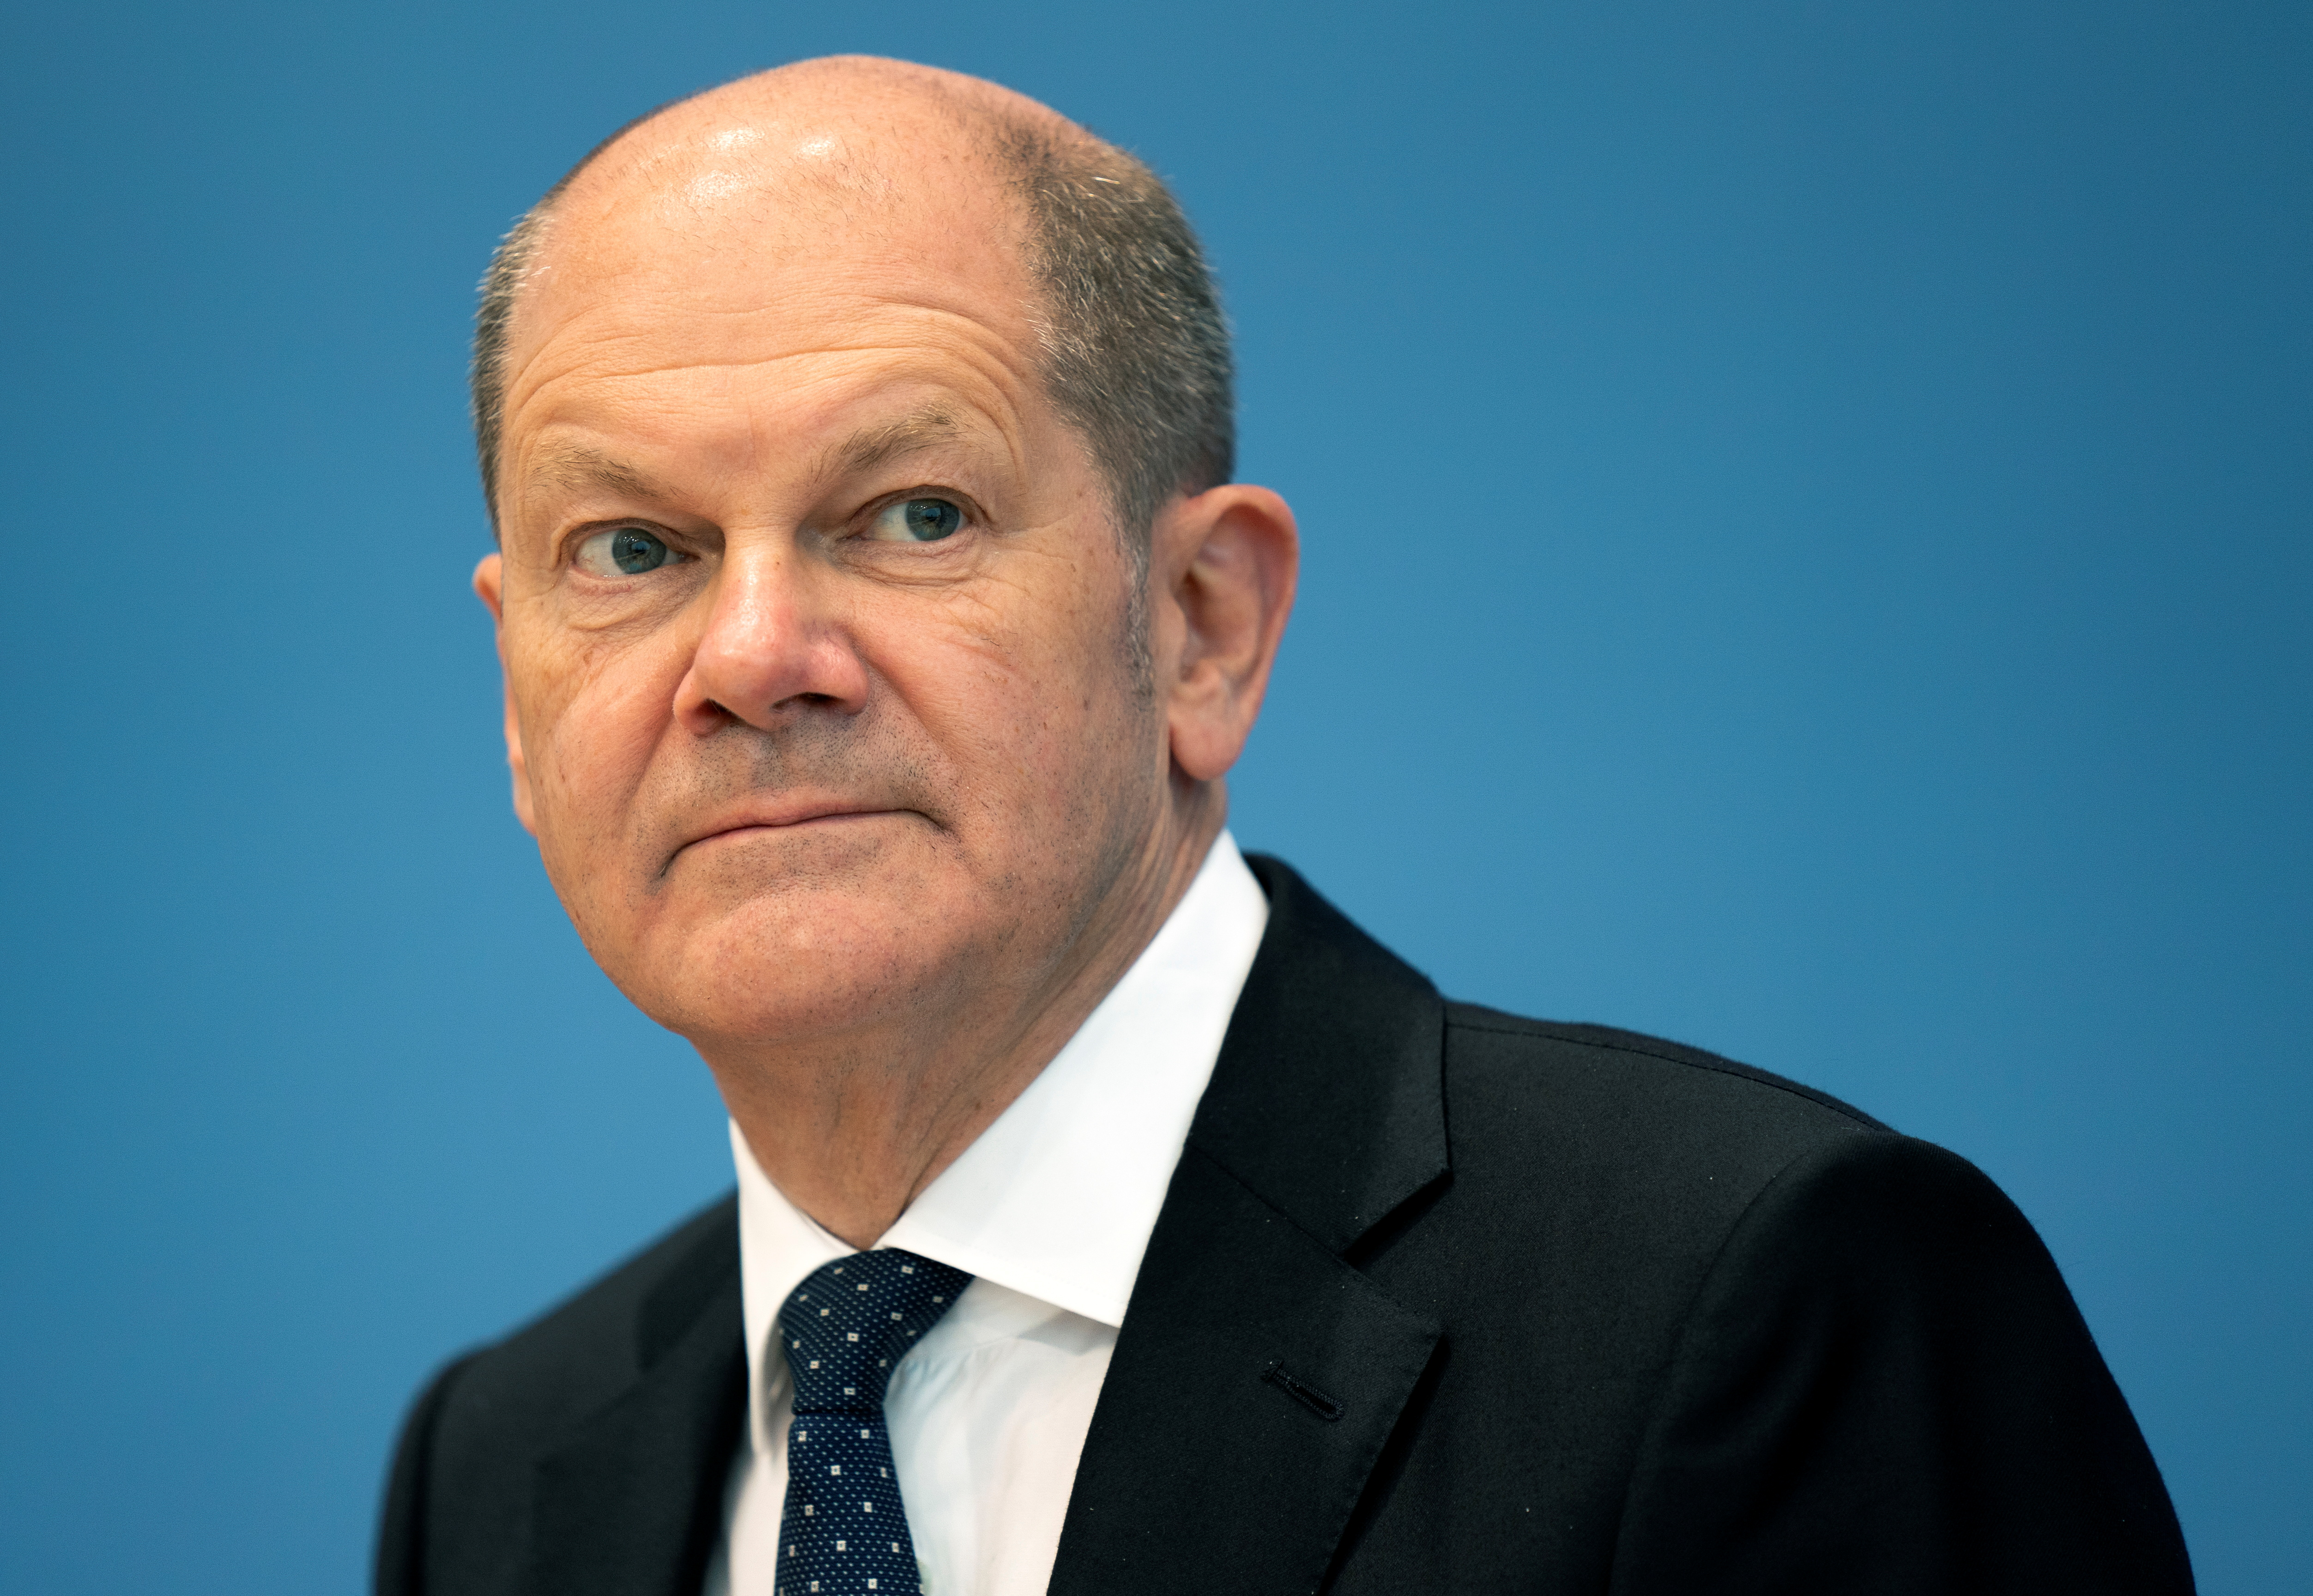 German Finance Minister Olaf Scholz attends a news conference on the tax estimate in Berlin, Germany, May 12, 2021. Michael Sohn/Pool via REUTERS